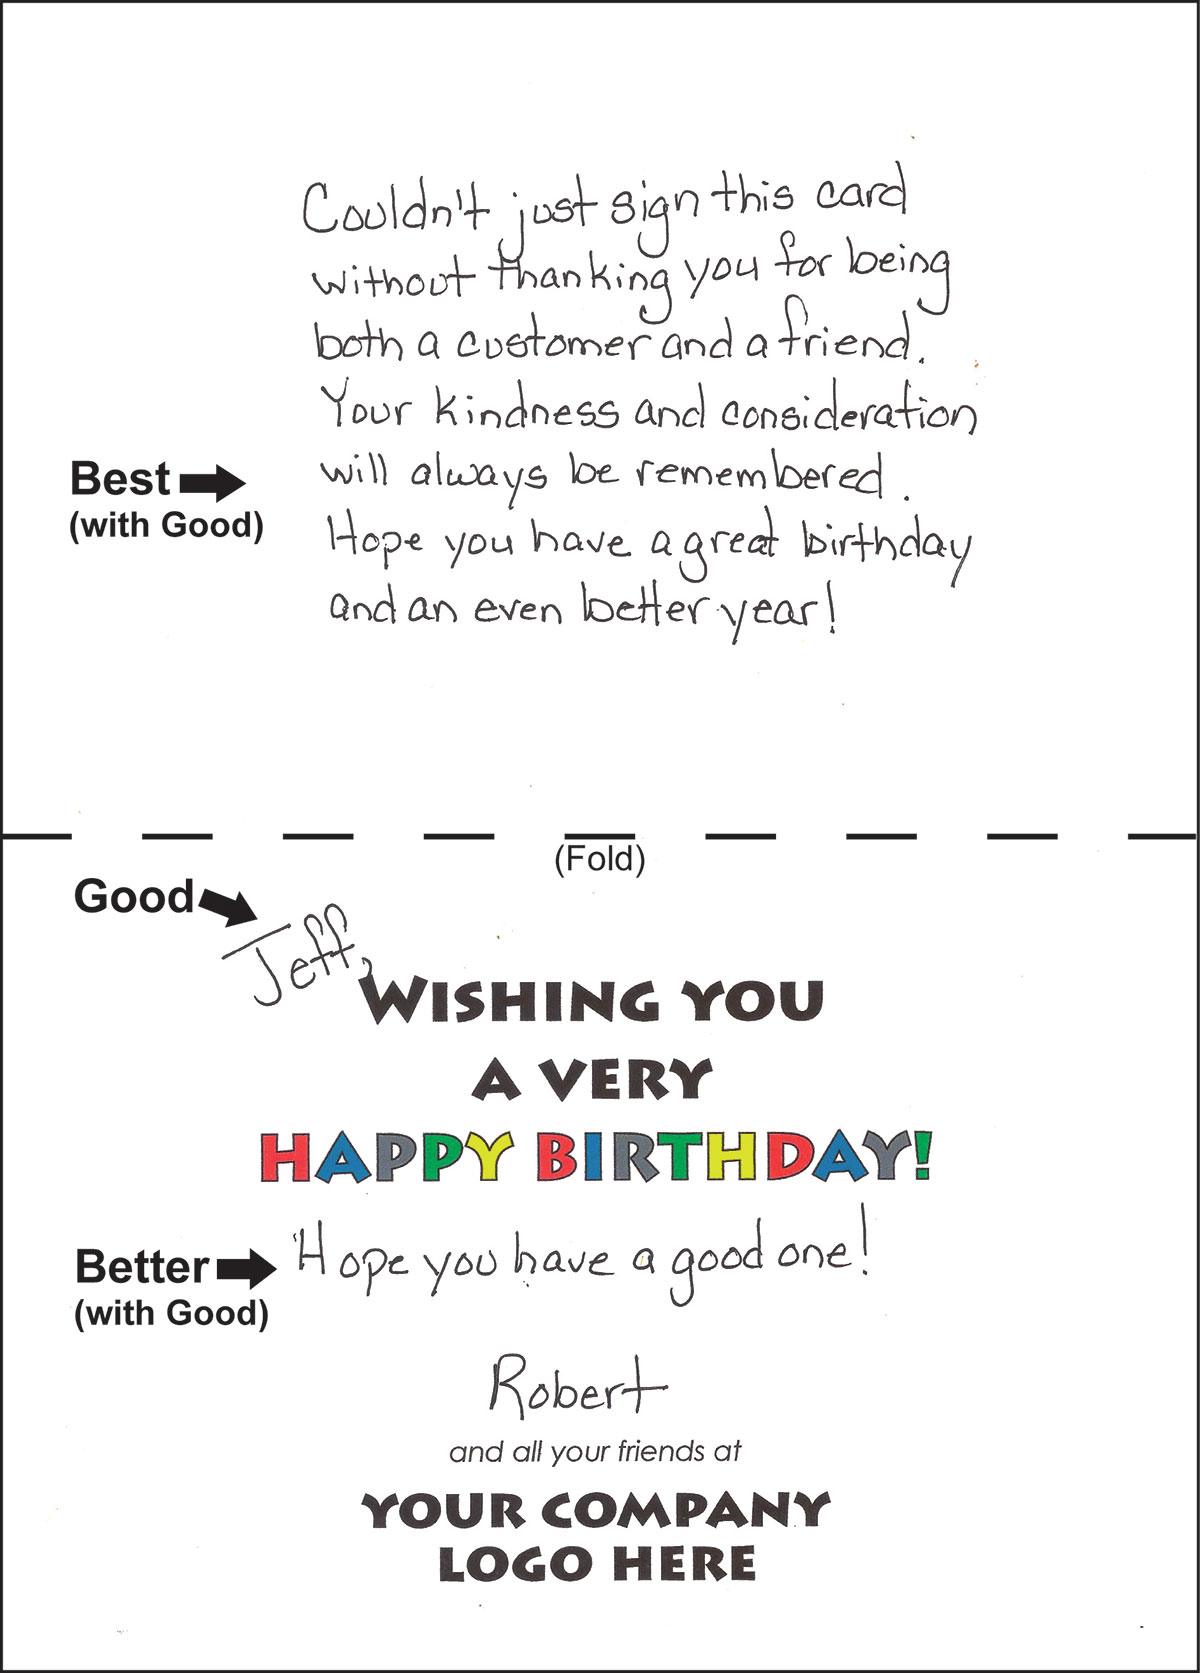 Sample-Signed-Card